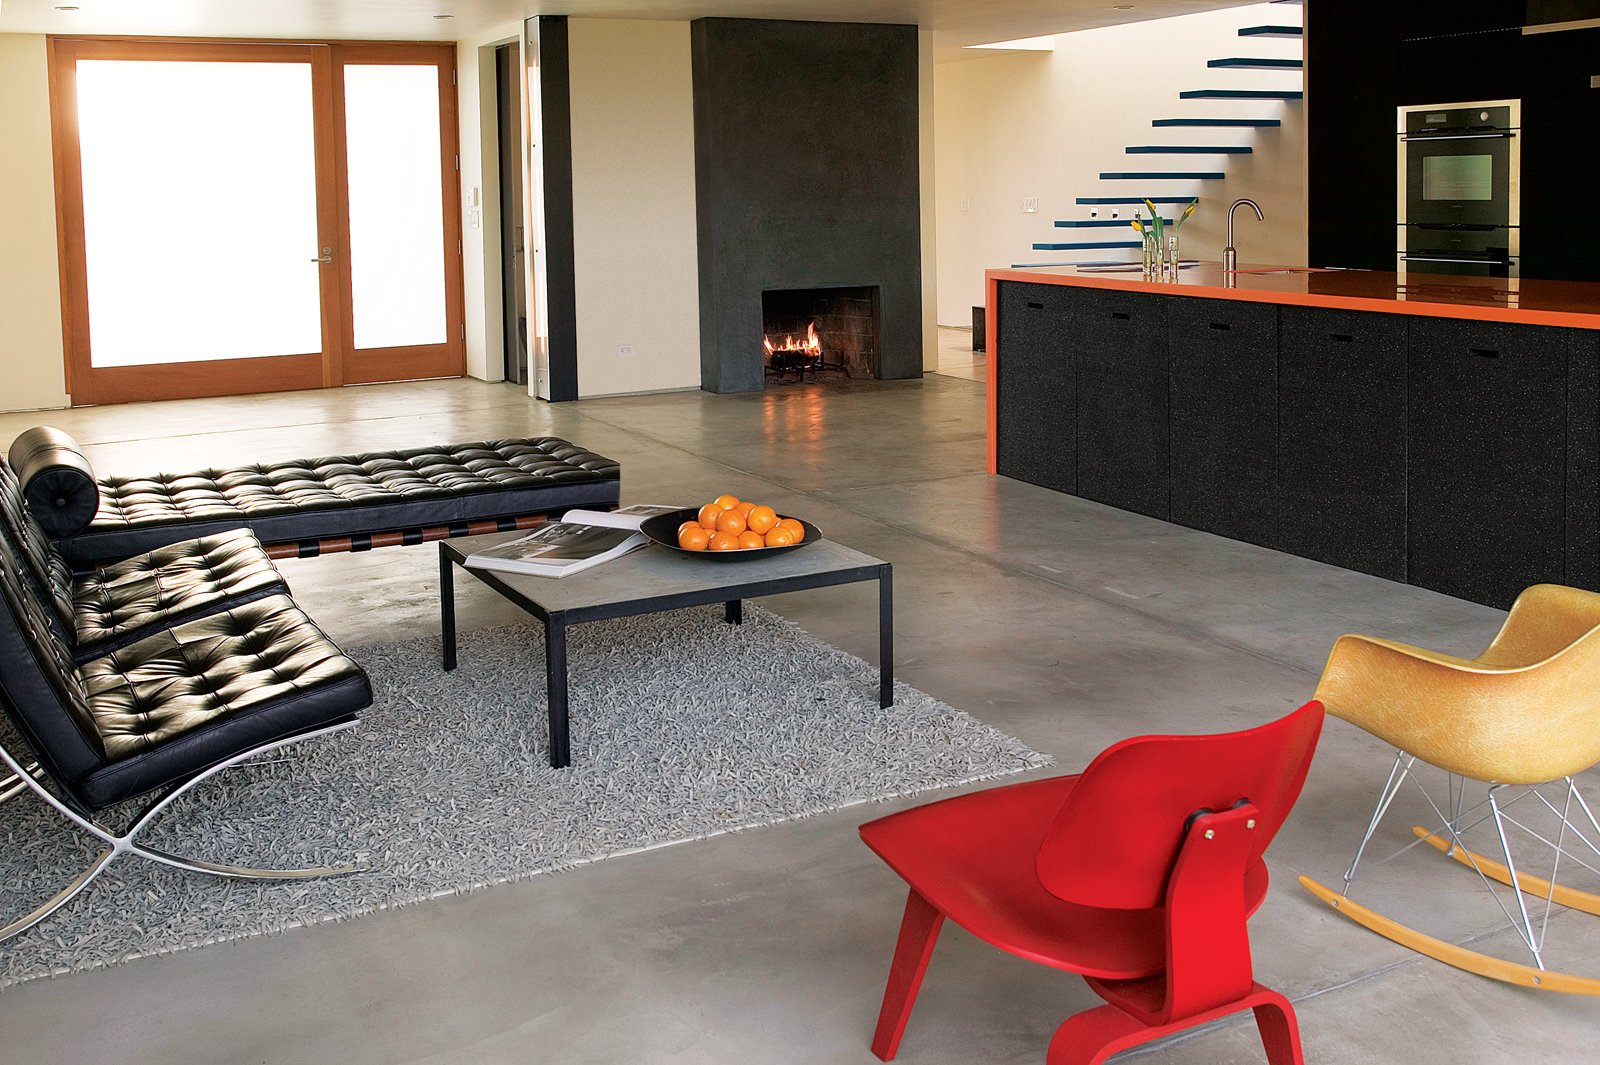 The sides of the orange Corian kitchen counter are clad in recycled rubber. Tagged: Living Room, Chair, Recessed Lighting, Sofa, Wood Burning Fireplace, Concrete Floor, Rug Floor, and Coffee Tables.  Photo 5 of 5 in Building Green in Santa Monica